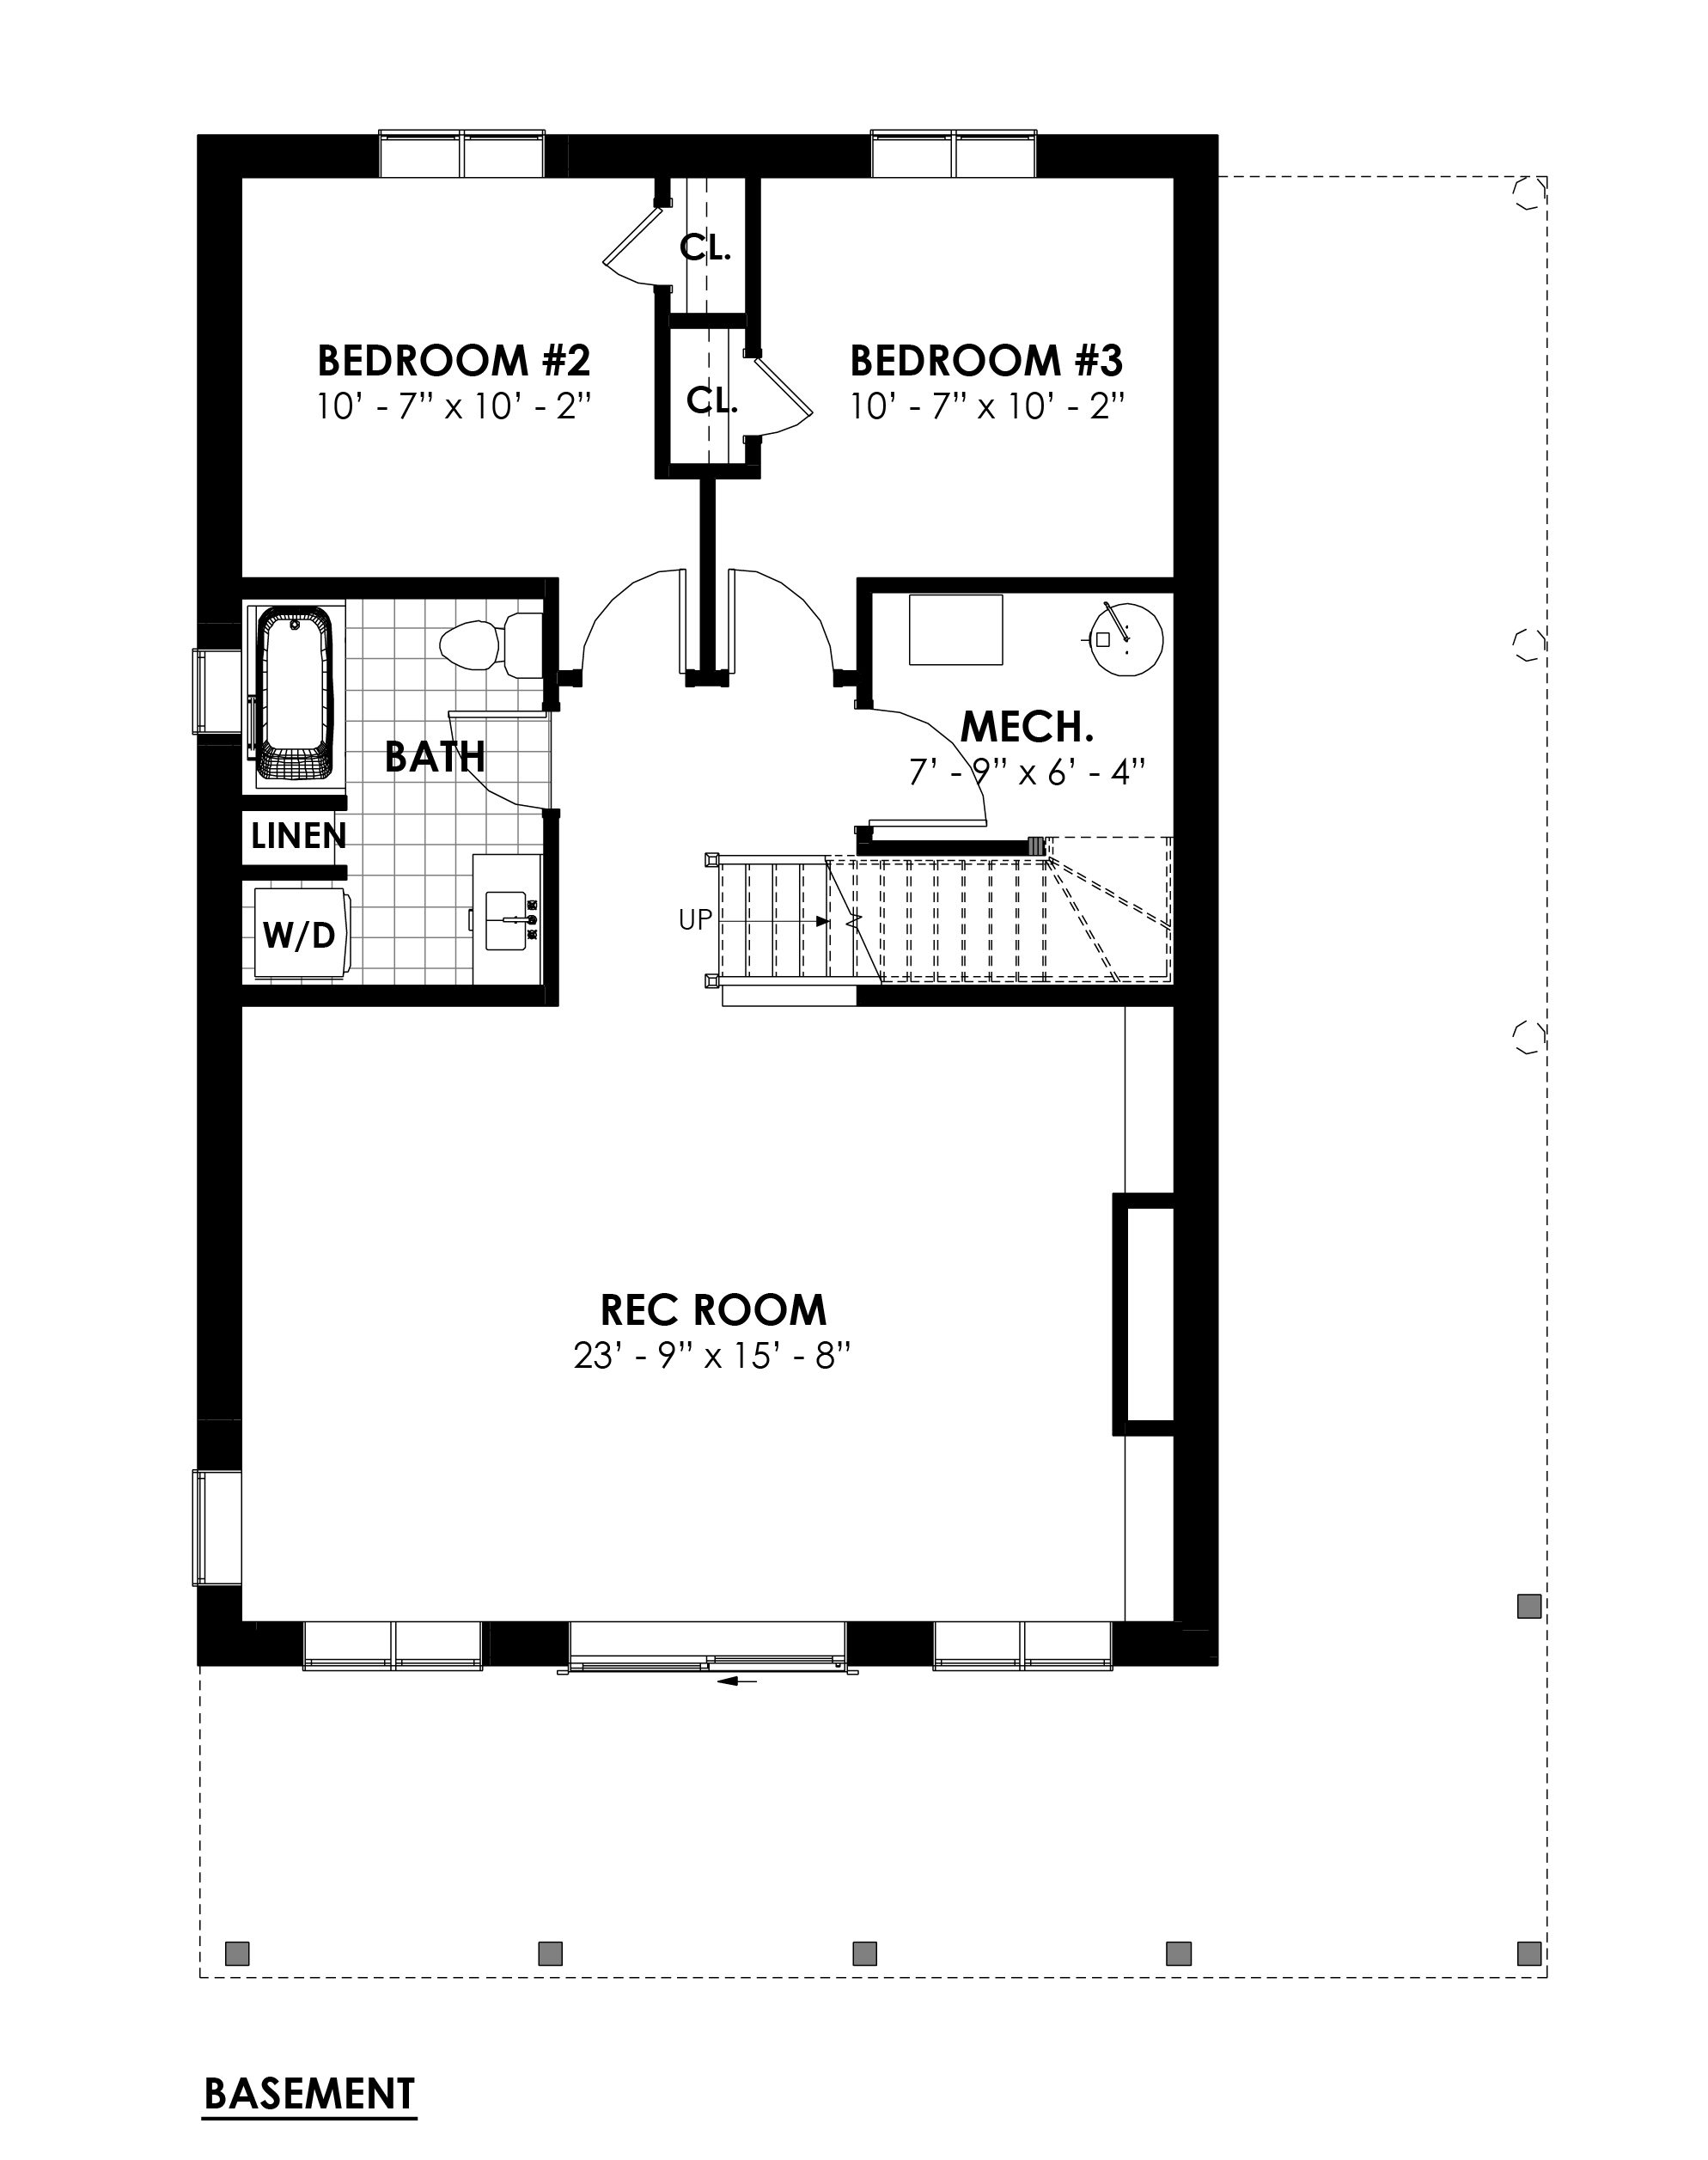 Timber Frame Open Concept House Plans   The Rouge   Normerica   Floor Plans, Basement